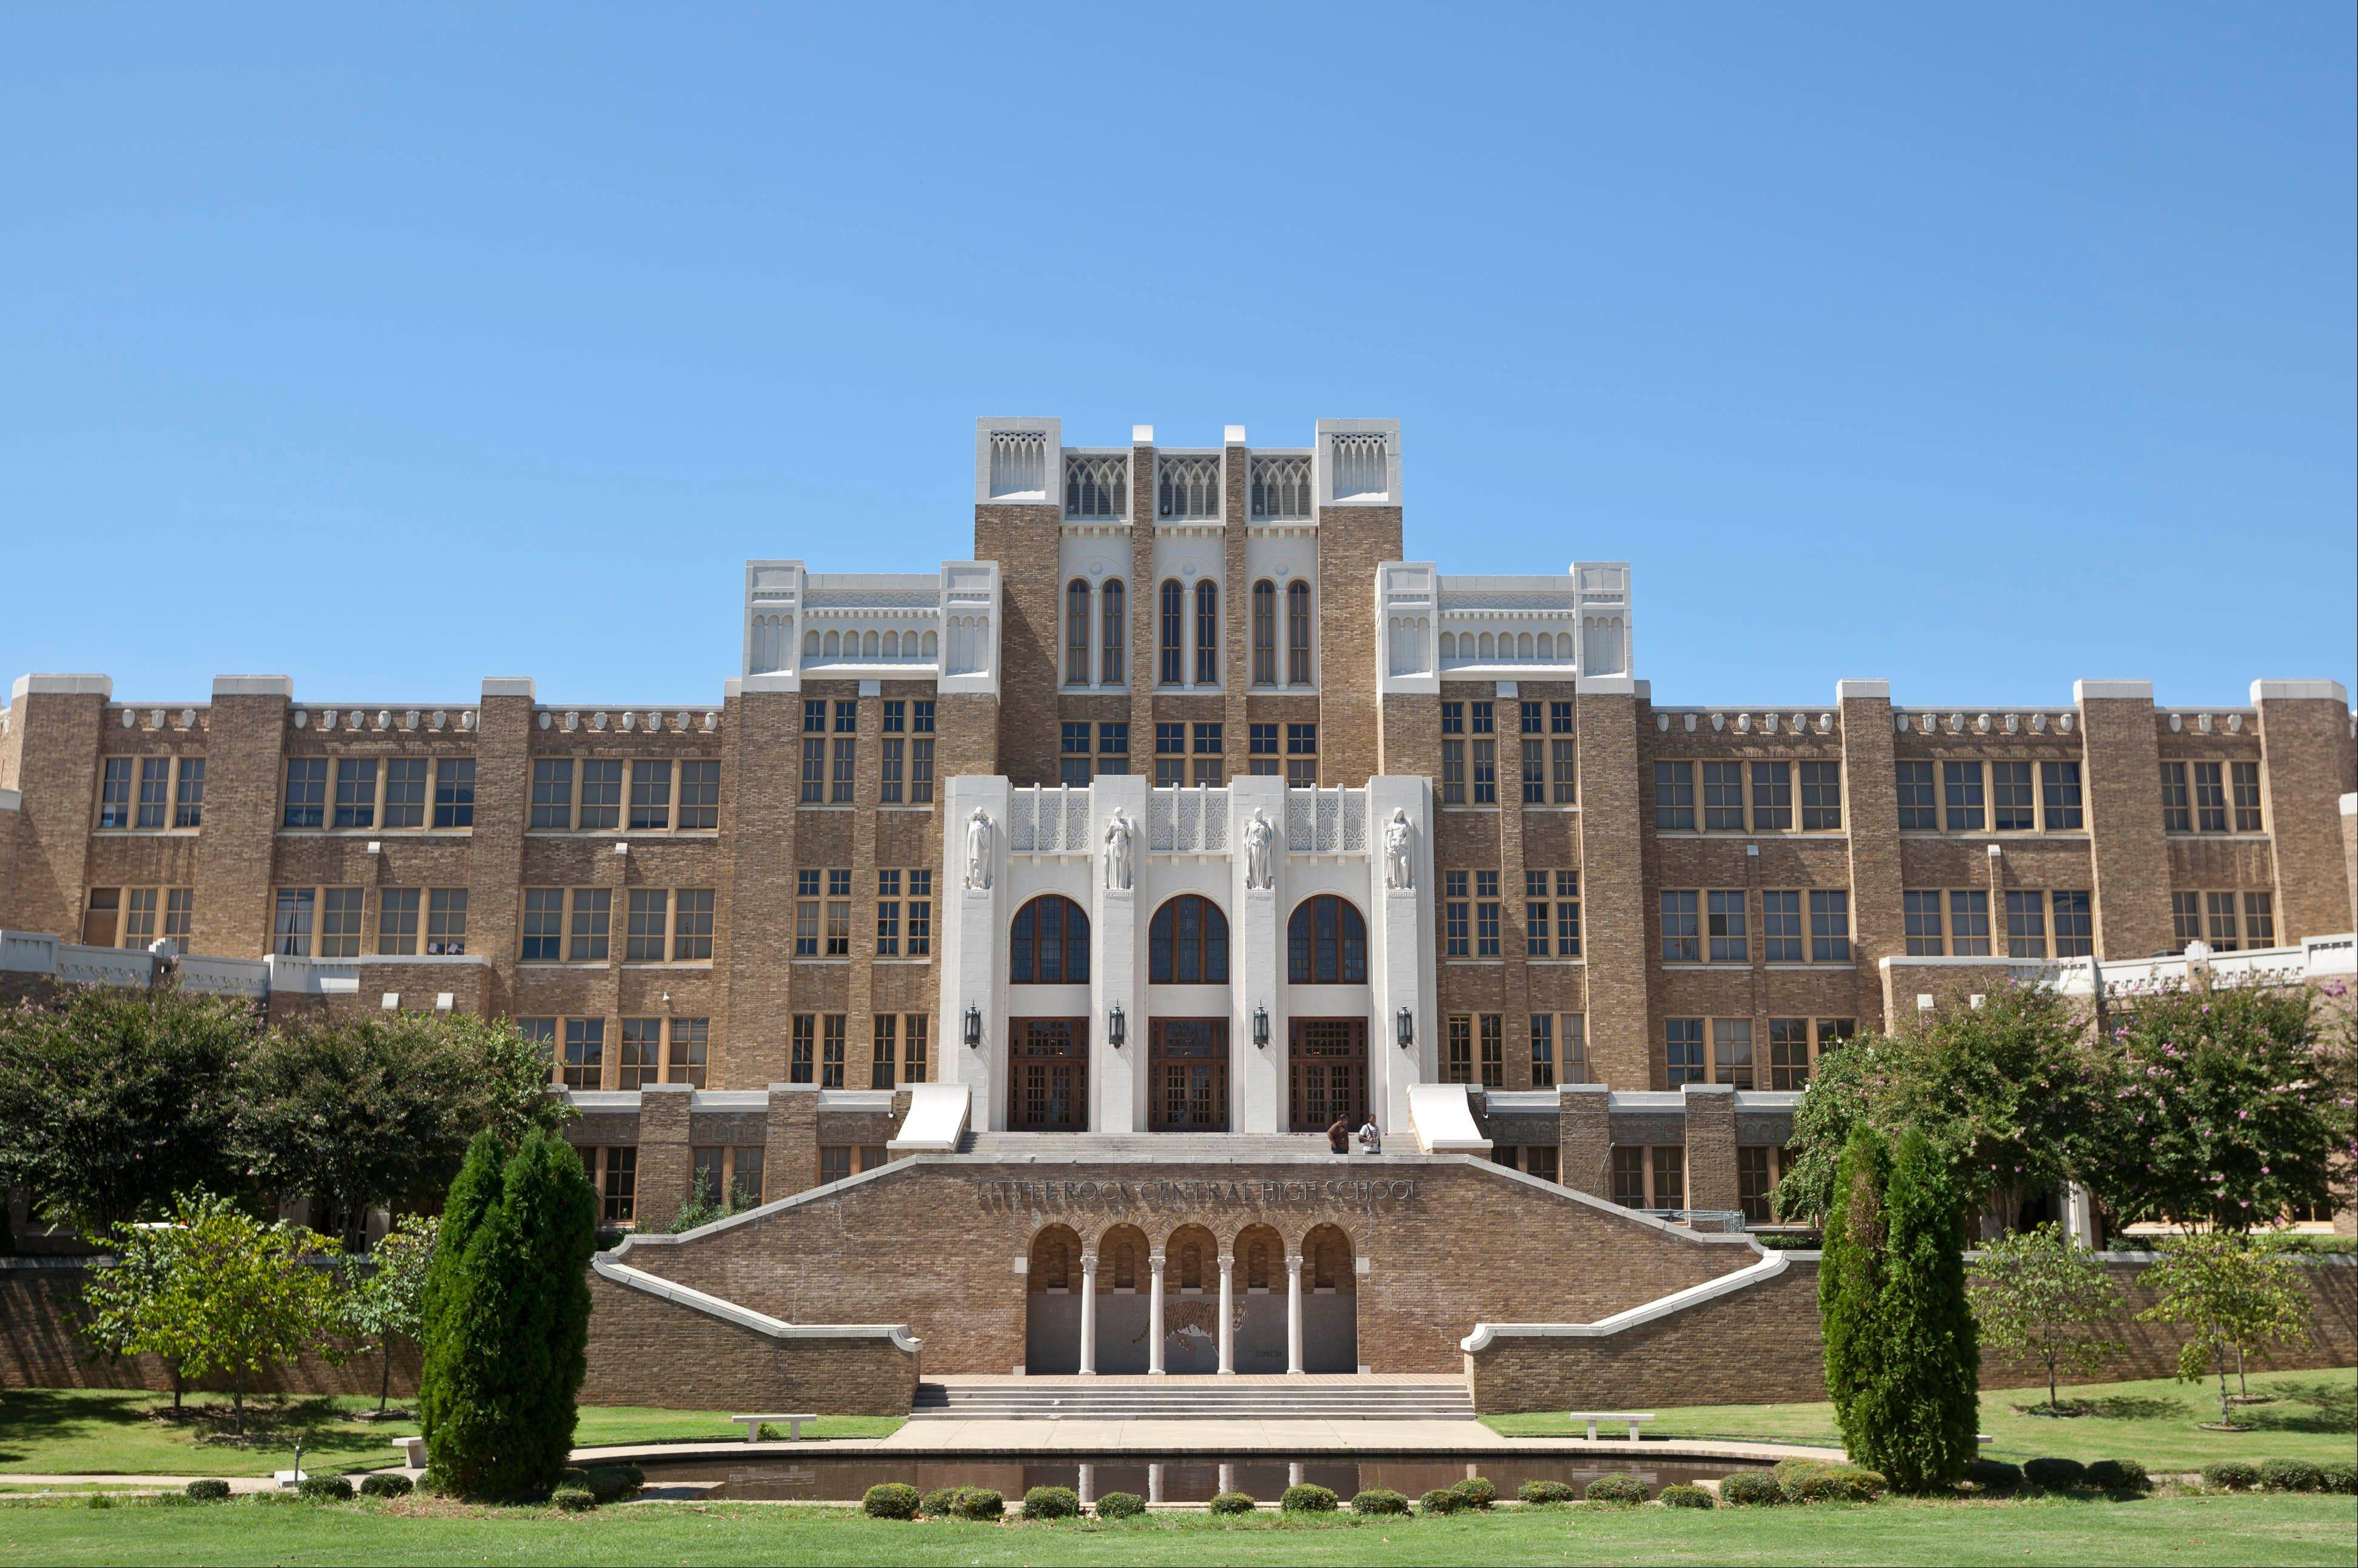 In 1957, Little Rock became the symbol of state resistance to integrating public schools when protesters backed by the governor tried to stop nine black students from entering Central High School and federal troops had to be sent in. Today the school is a National Historic Site.